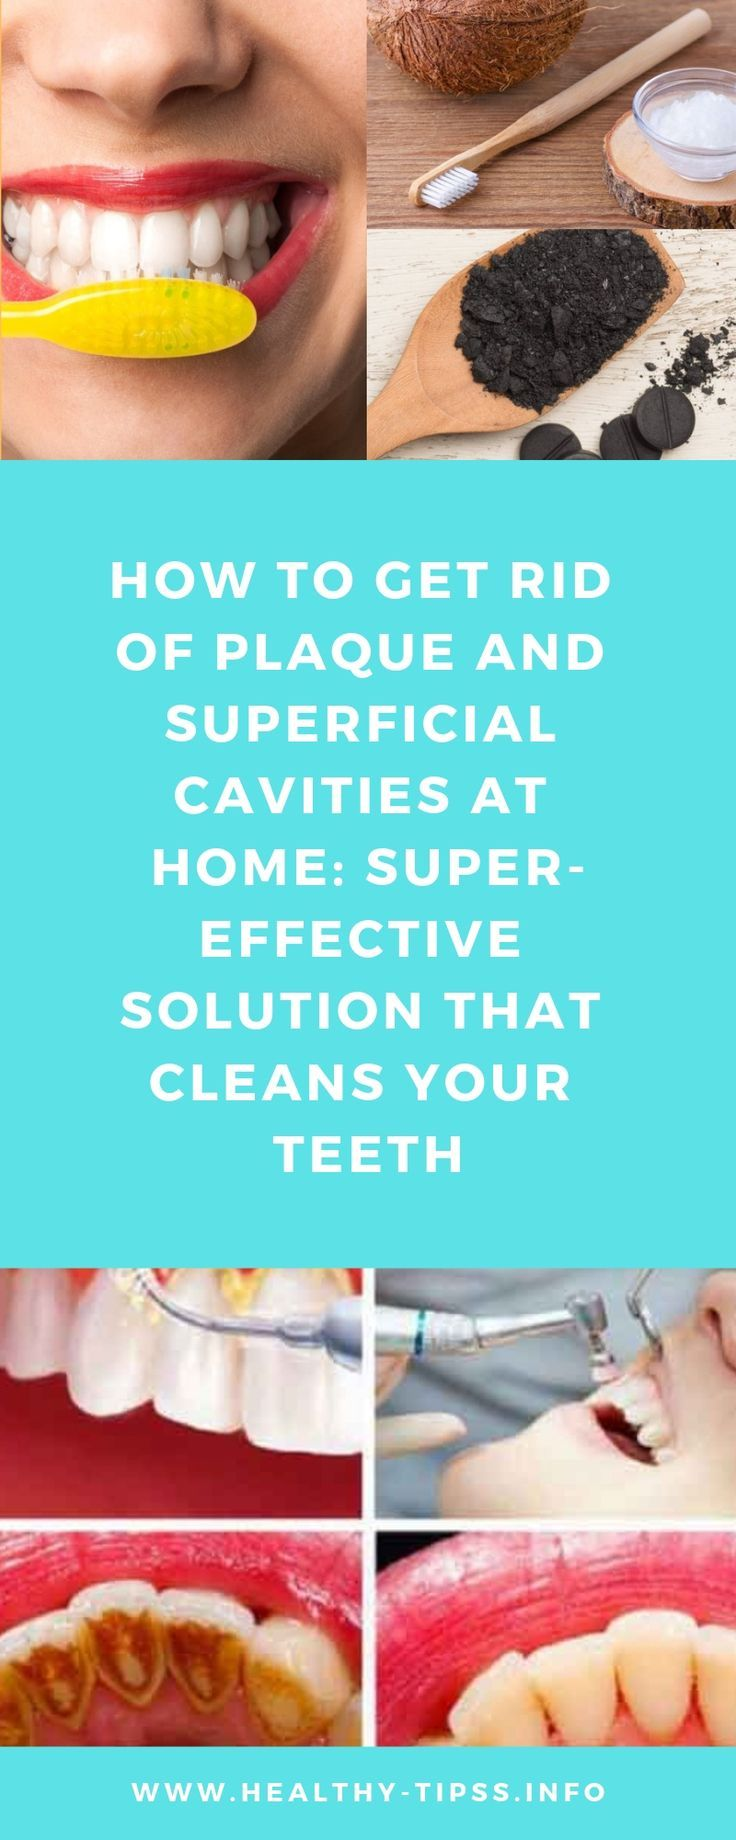 How to get rid of plaque and superficial cavities at home